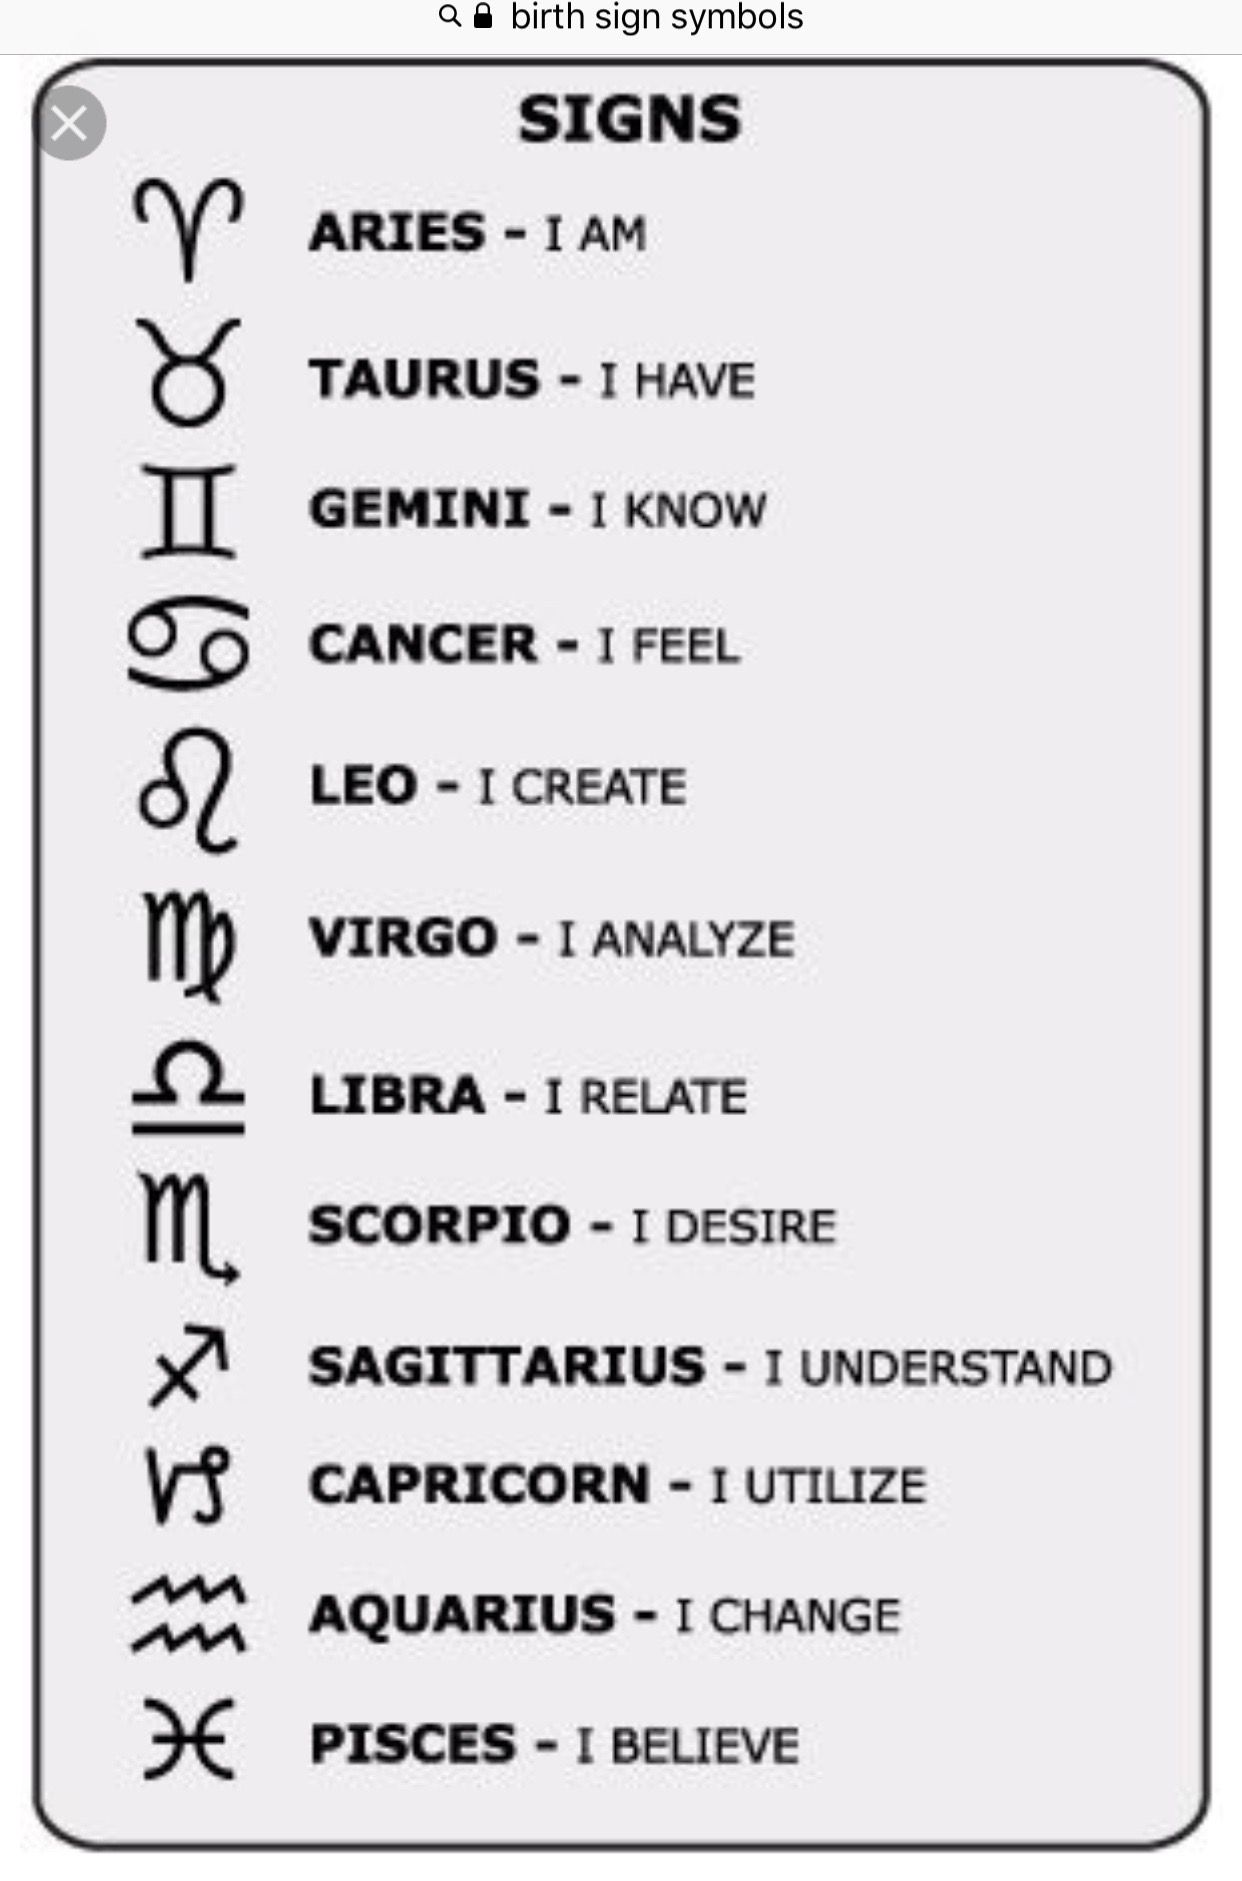 Pin By Ethereal Luna On Humor Astrological Symbols Zodiac Signs Astrology Signs